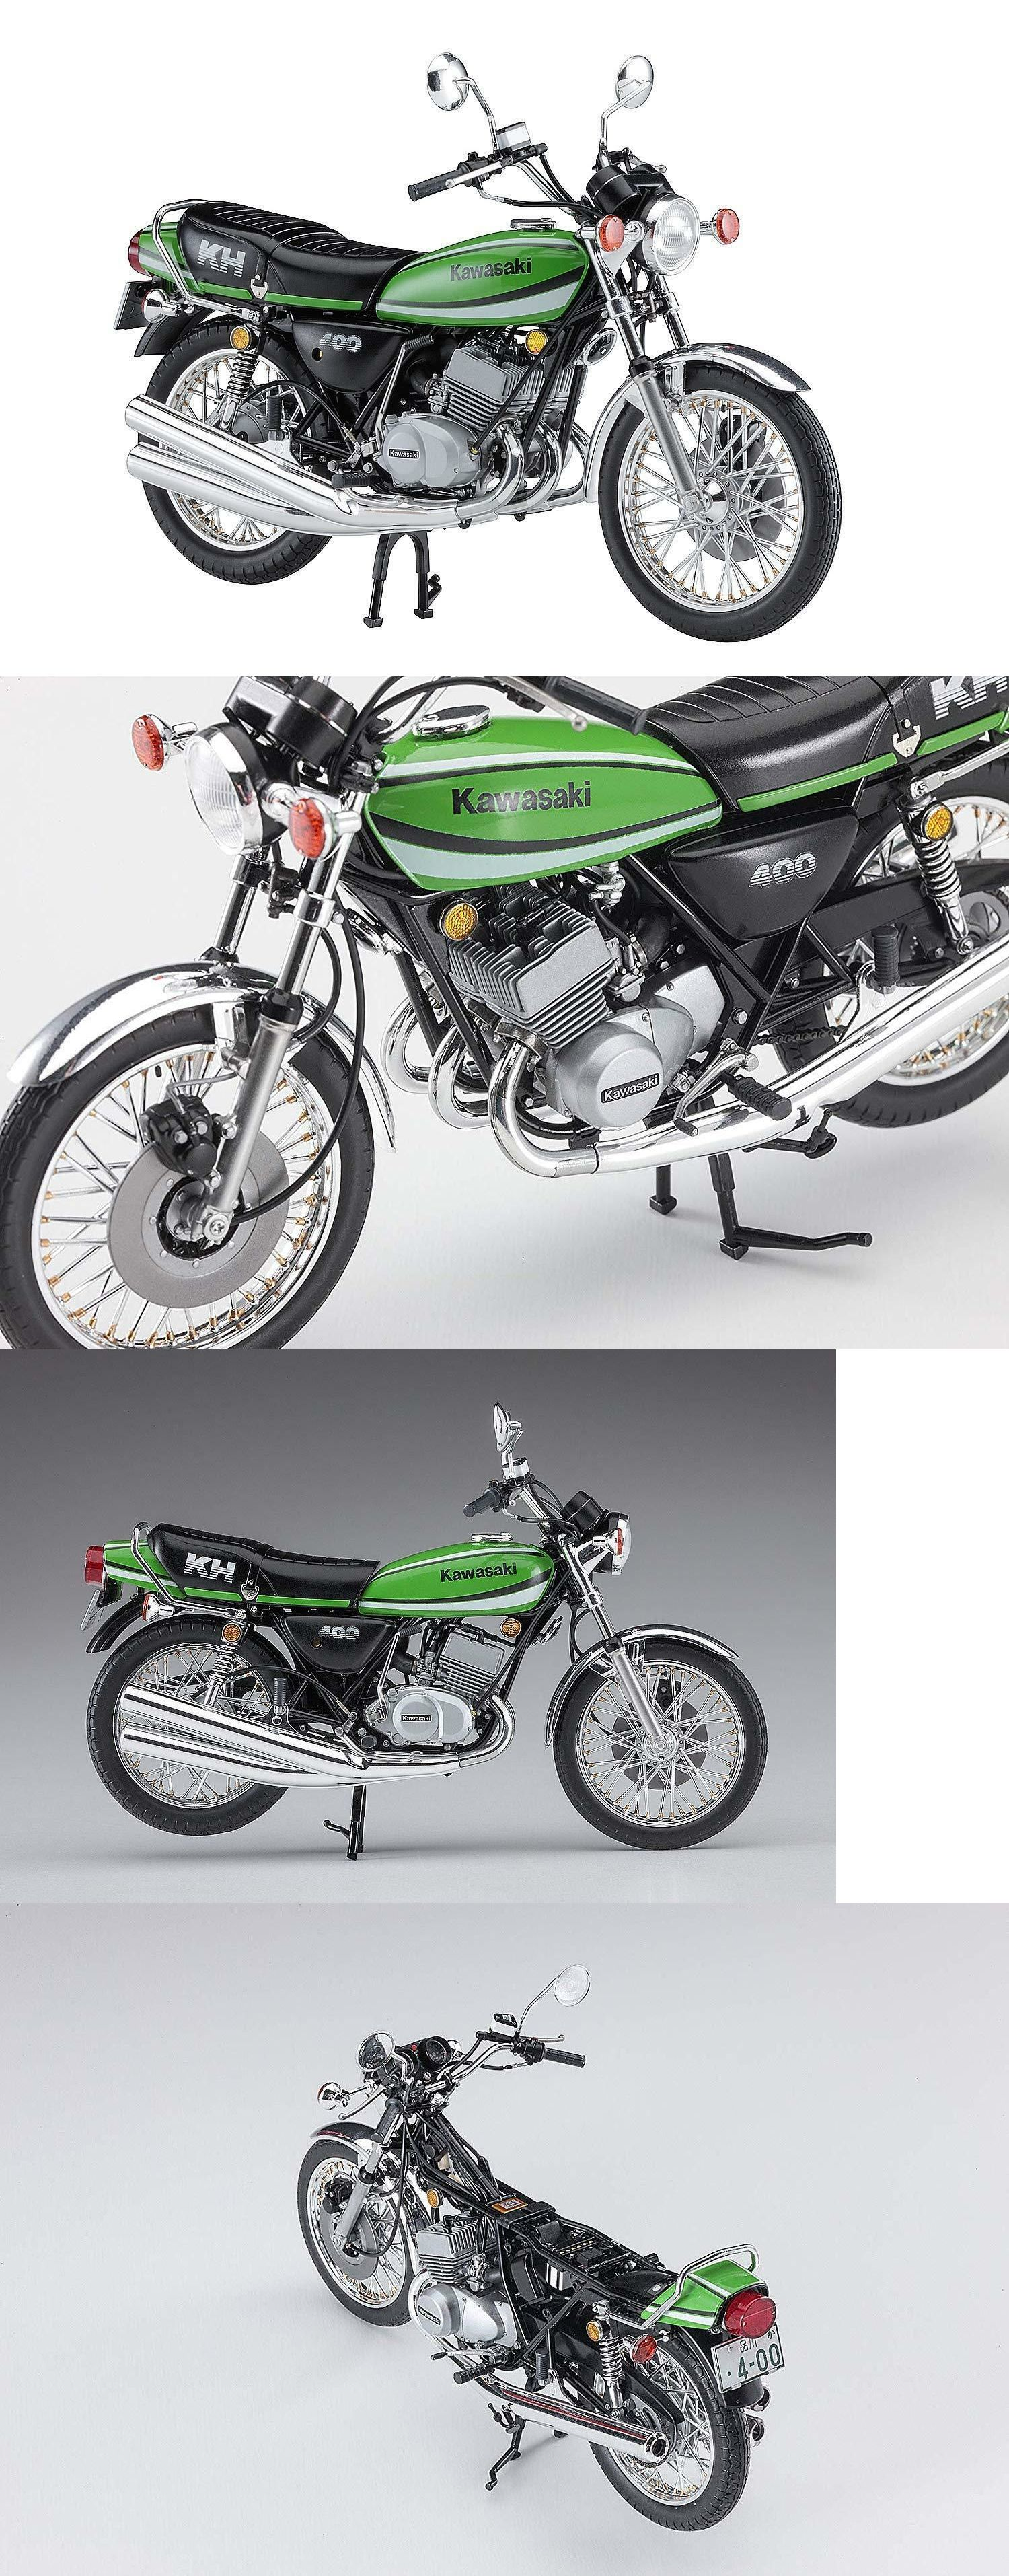 Motorcycle 2591 Hasegawa 1 12 Bike Series Kawasaki Kh400 A7 From Japan Buy It Now Only 38 On Ebay Motorcycle Haseg Kawasaki Motorcycle Model Kits Bike